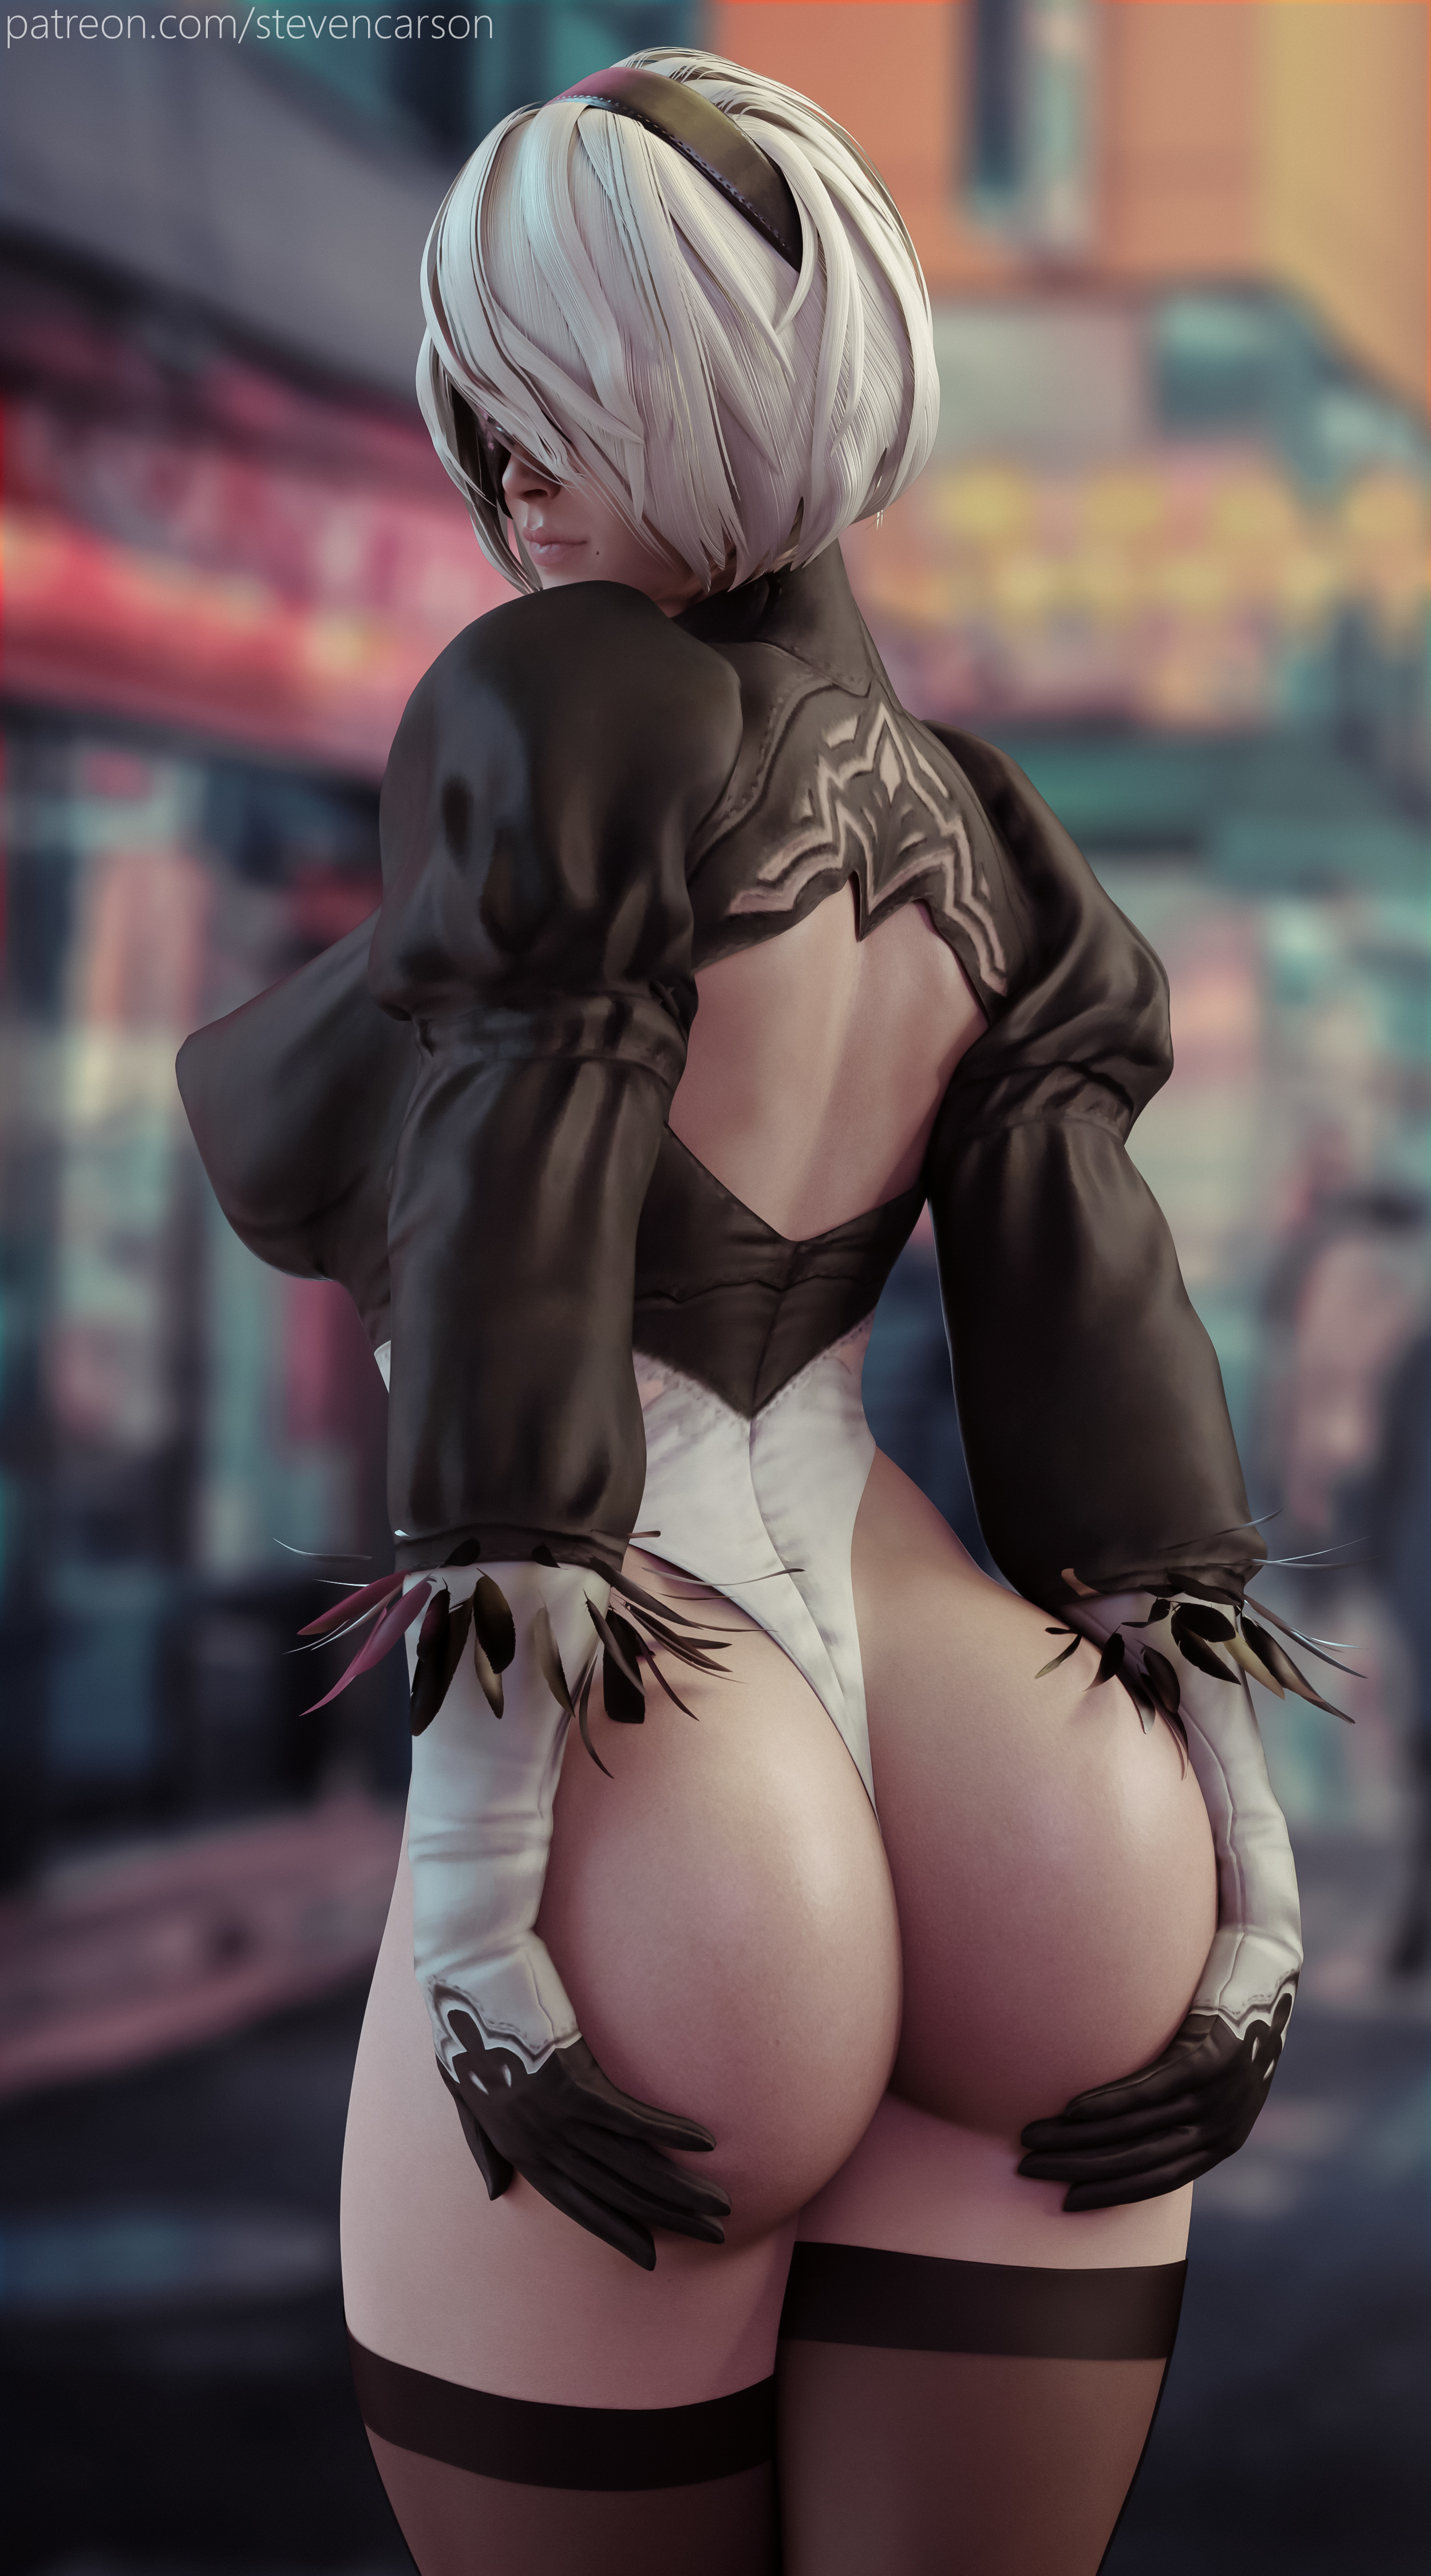 2B (Futanari & Female)